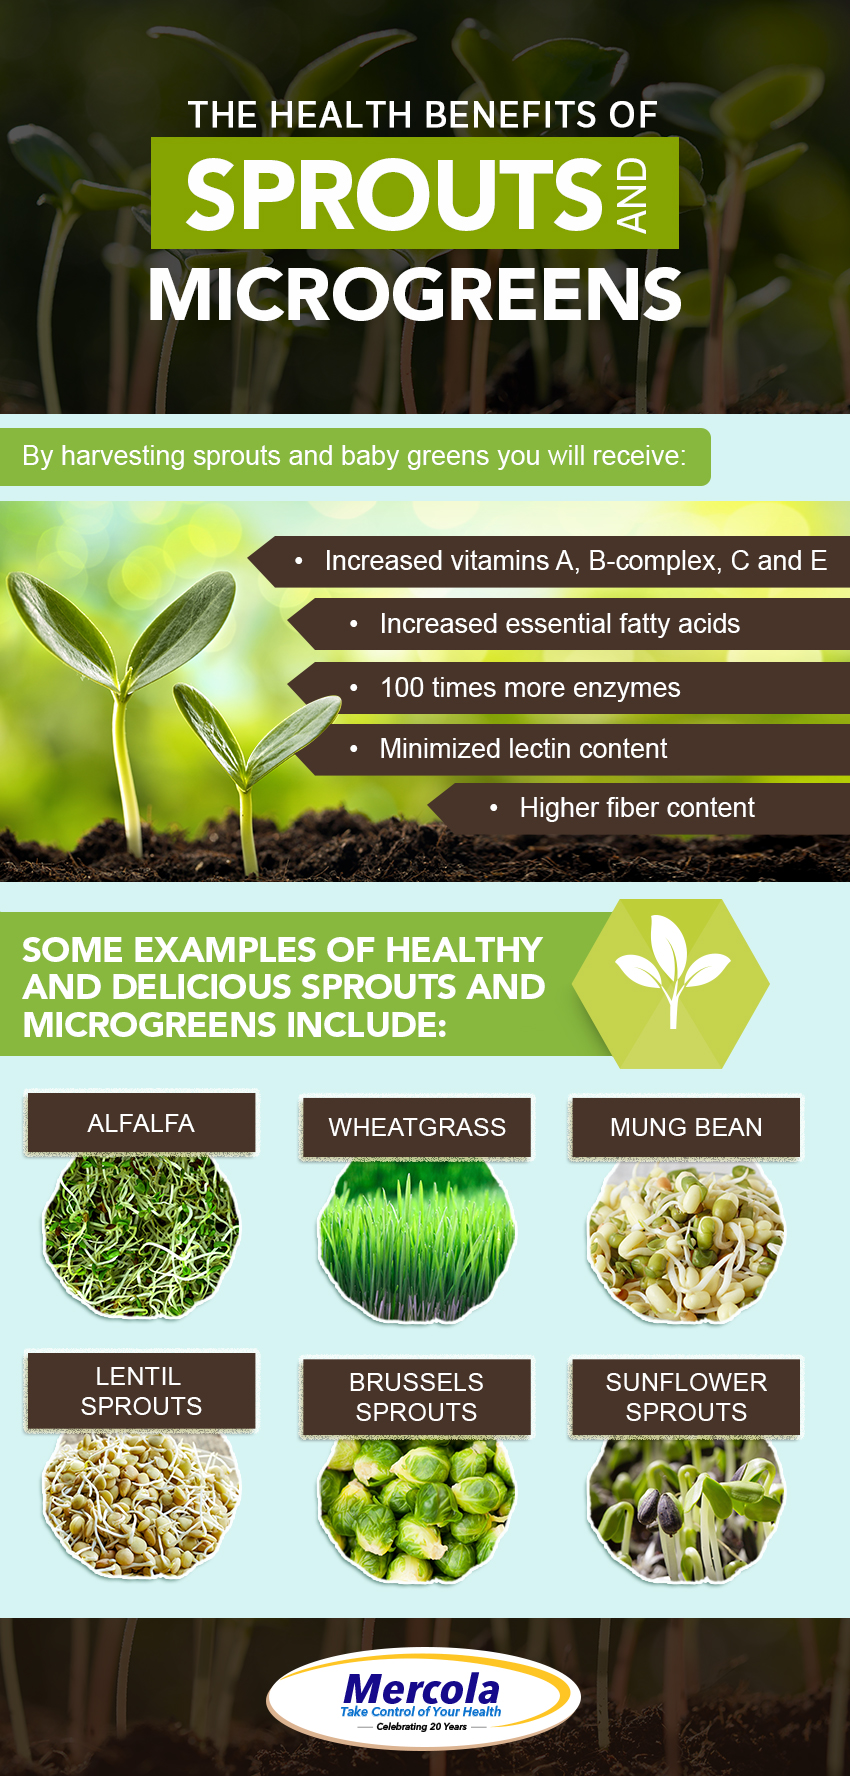 The Health Benefits of Sprouts and Microgreens